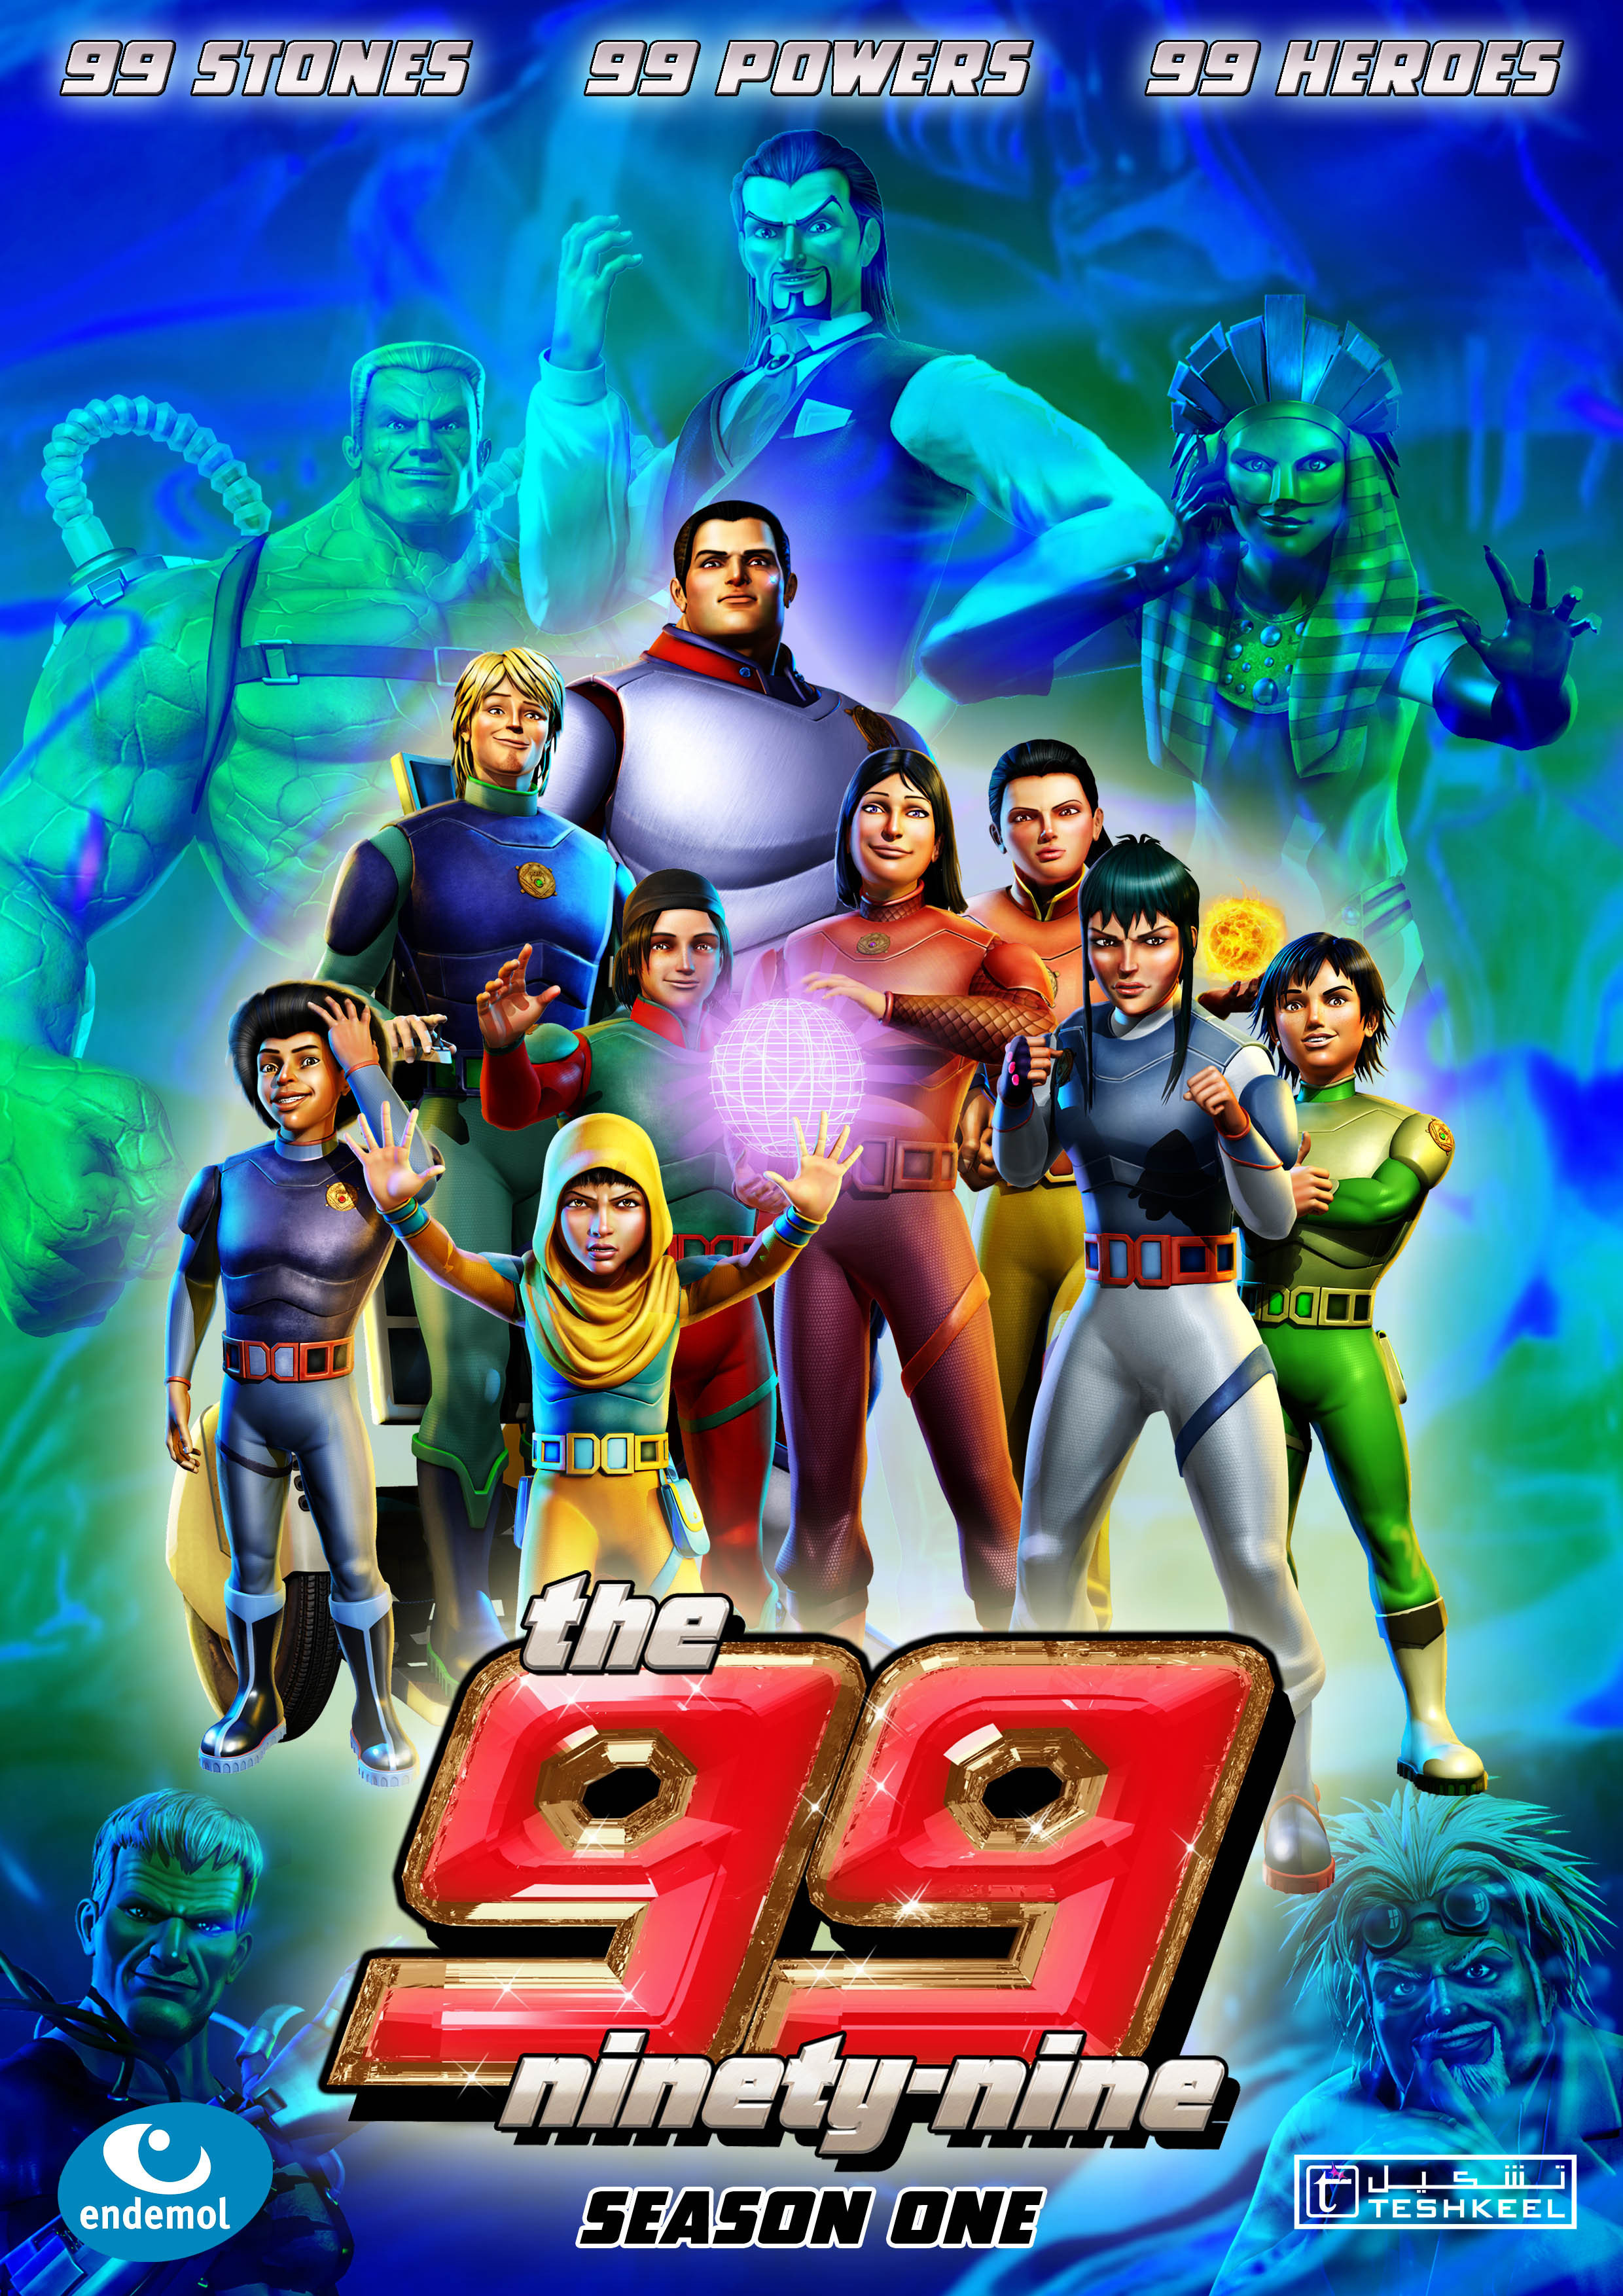 The 99